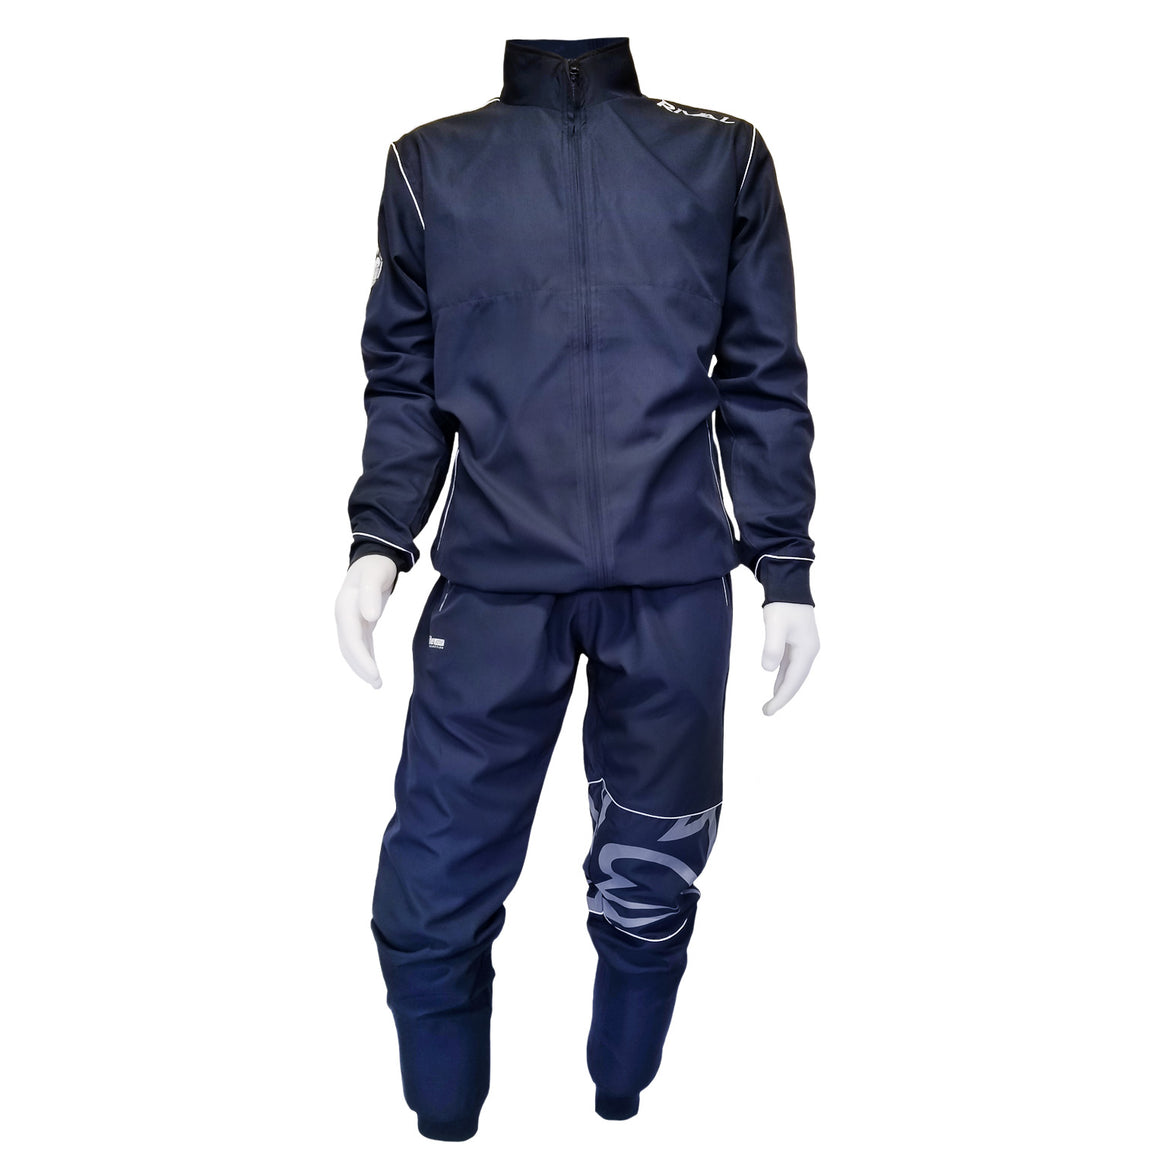 Rival Elite Active Tracksuit with Collar